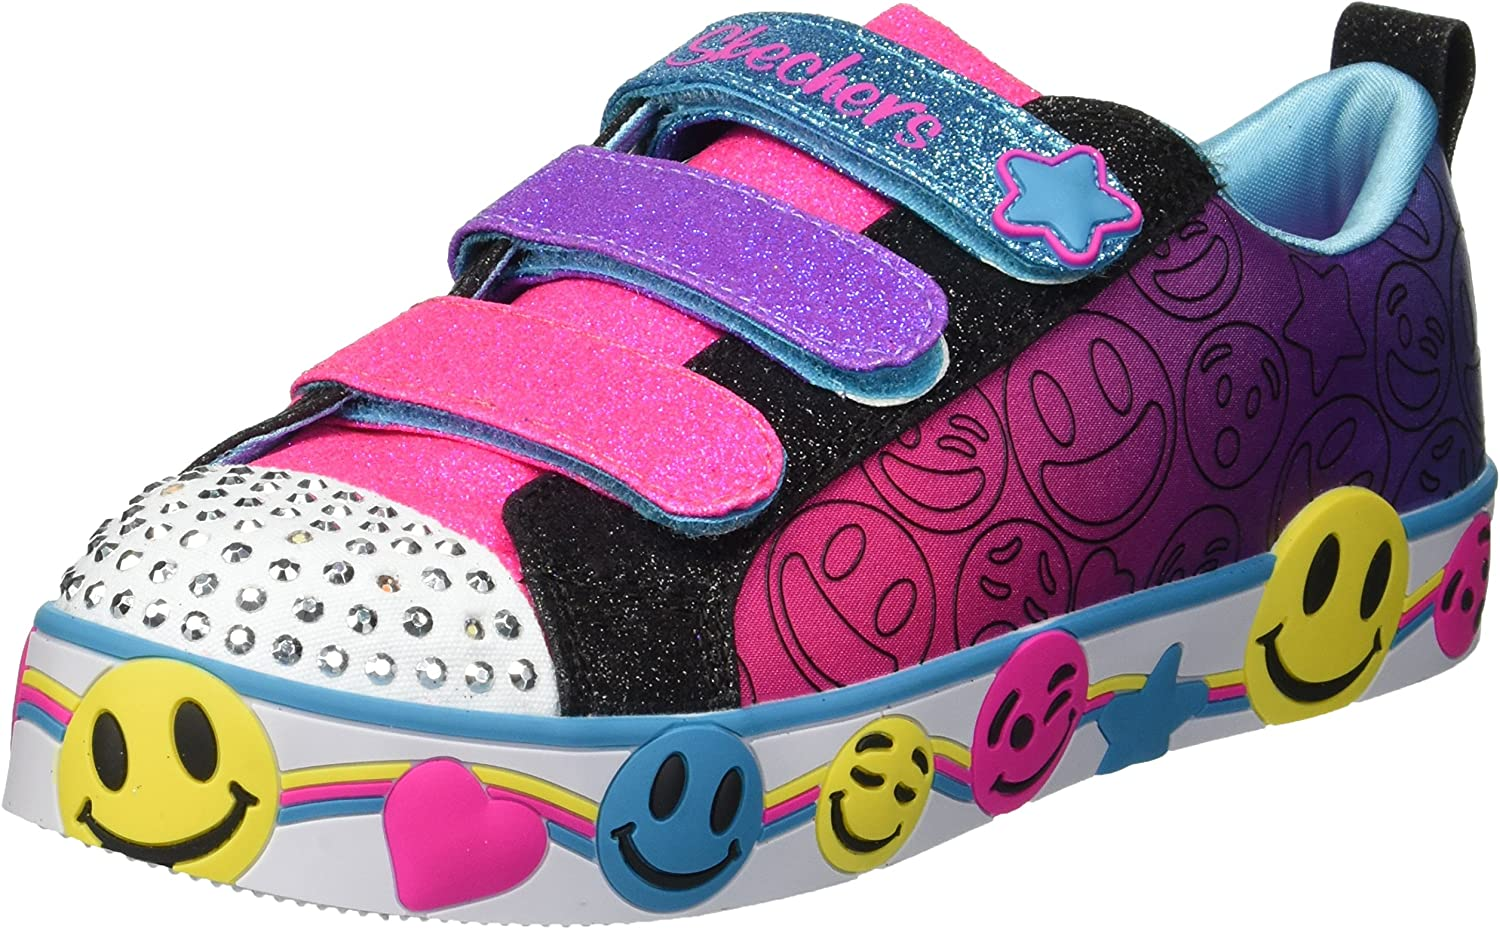 shipfree Skechers Unisex-Child Free shipping New Lite-Smile Sneakers